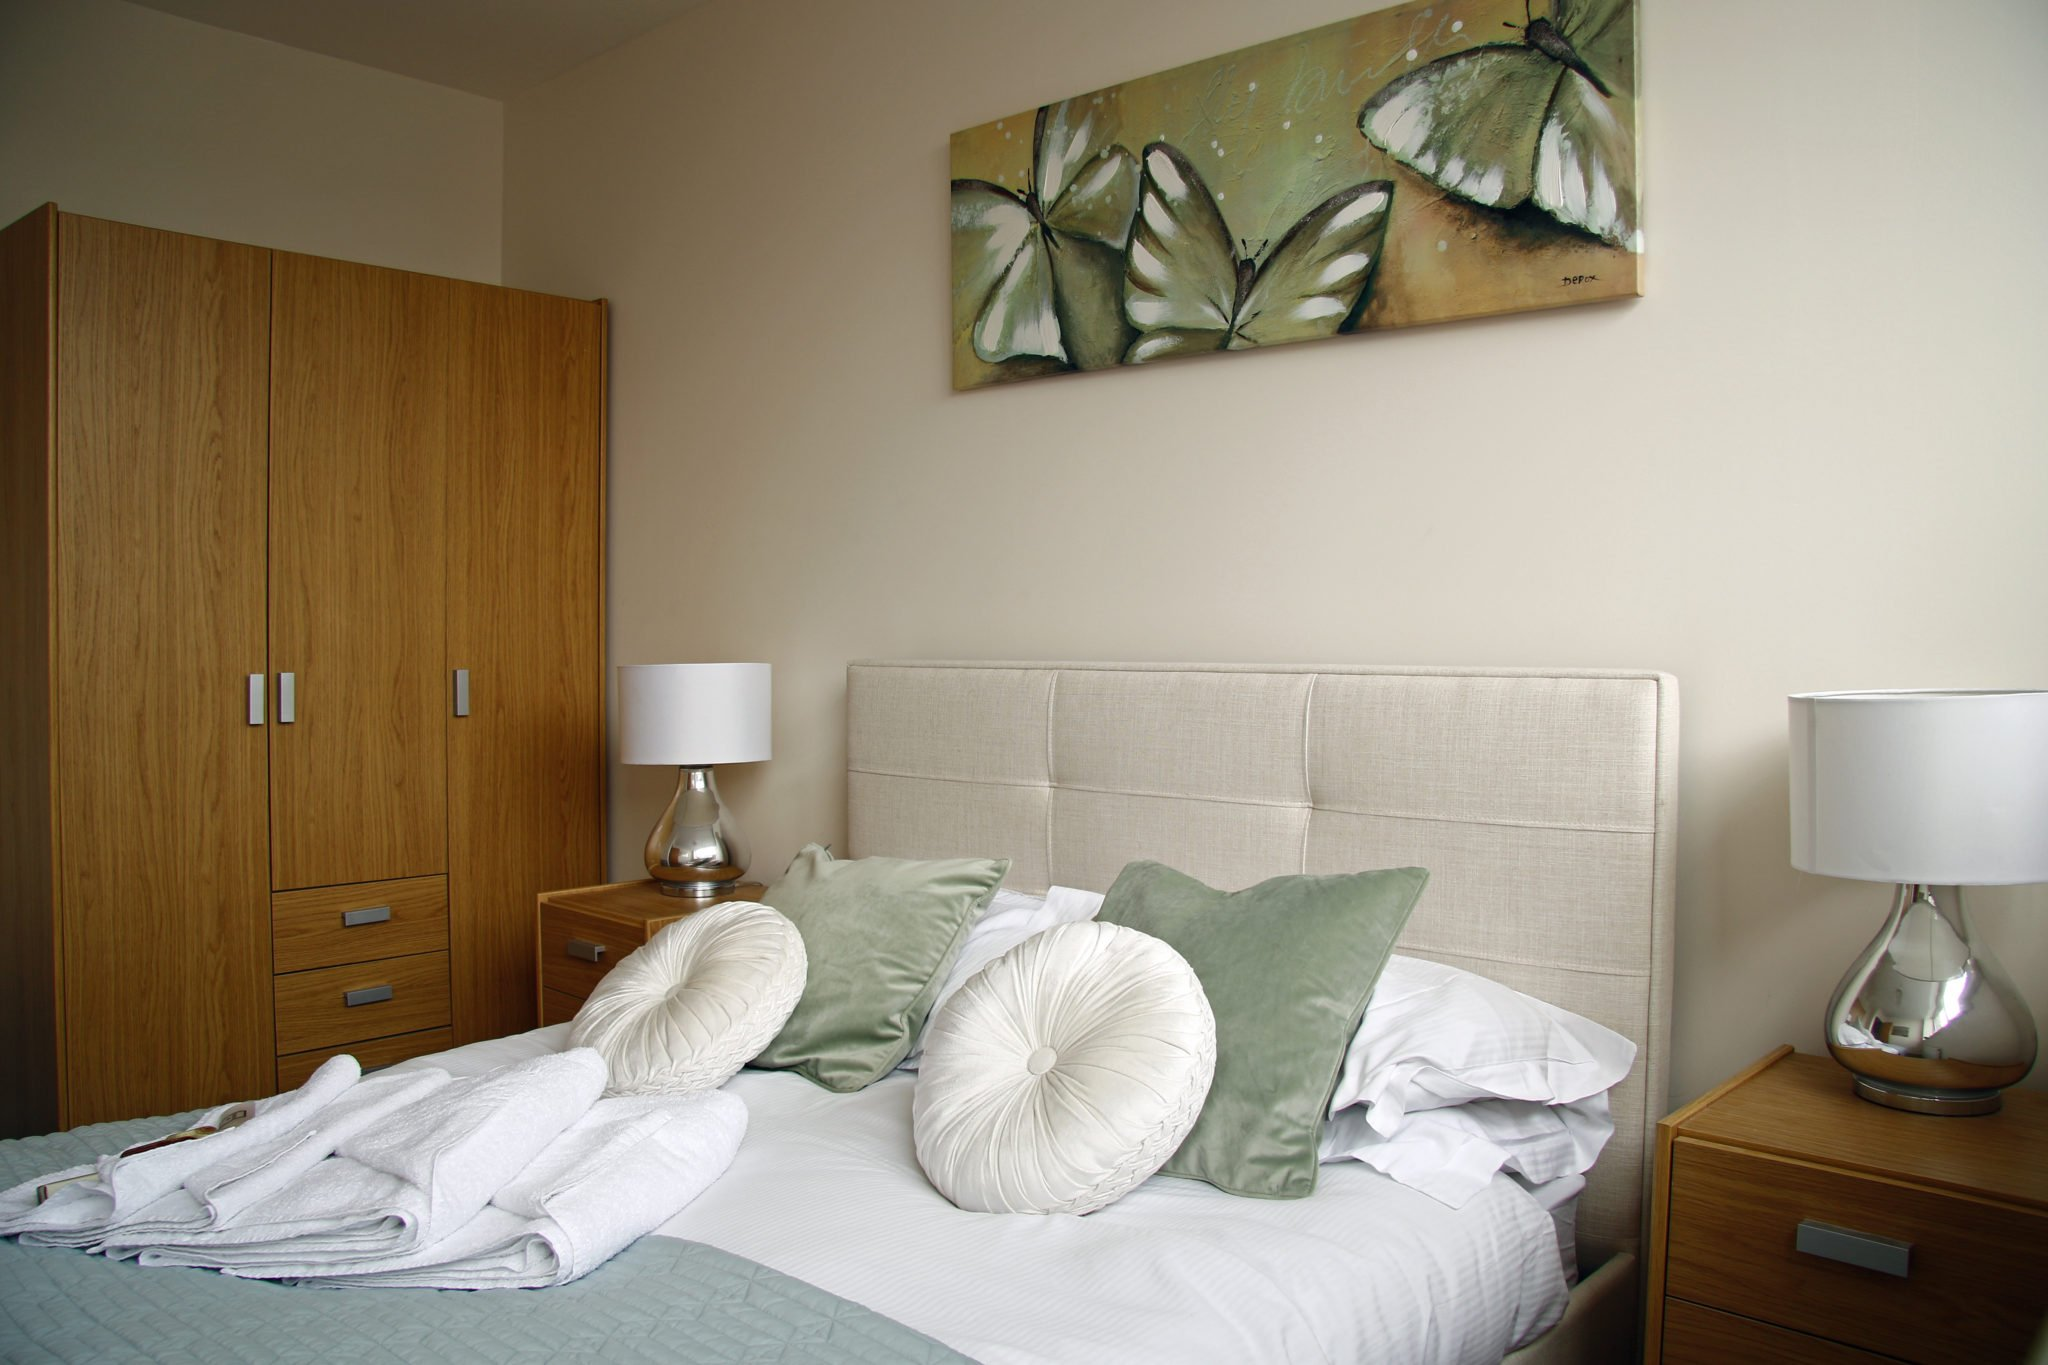 Short-Let-Accommodation-Stevenage---Skyline-House-Serviced-Apartments-Hertfordshire---Self-Catering-Accommodation-UK-|-Urban-Stay